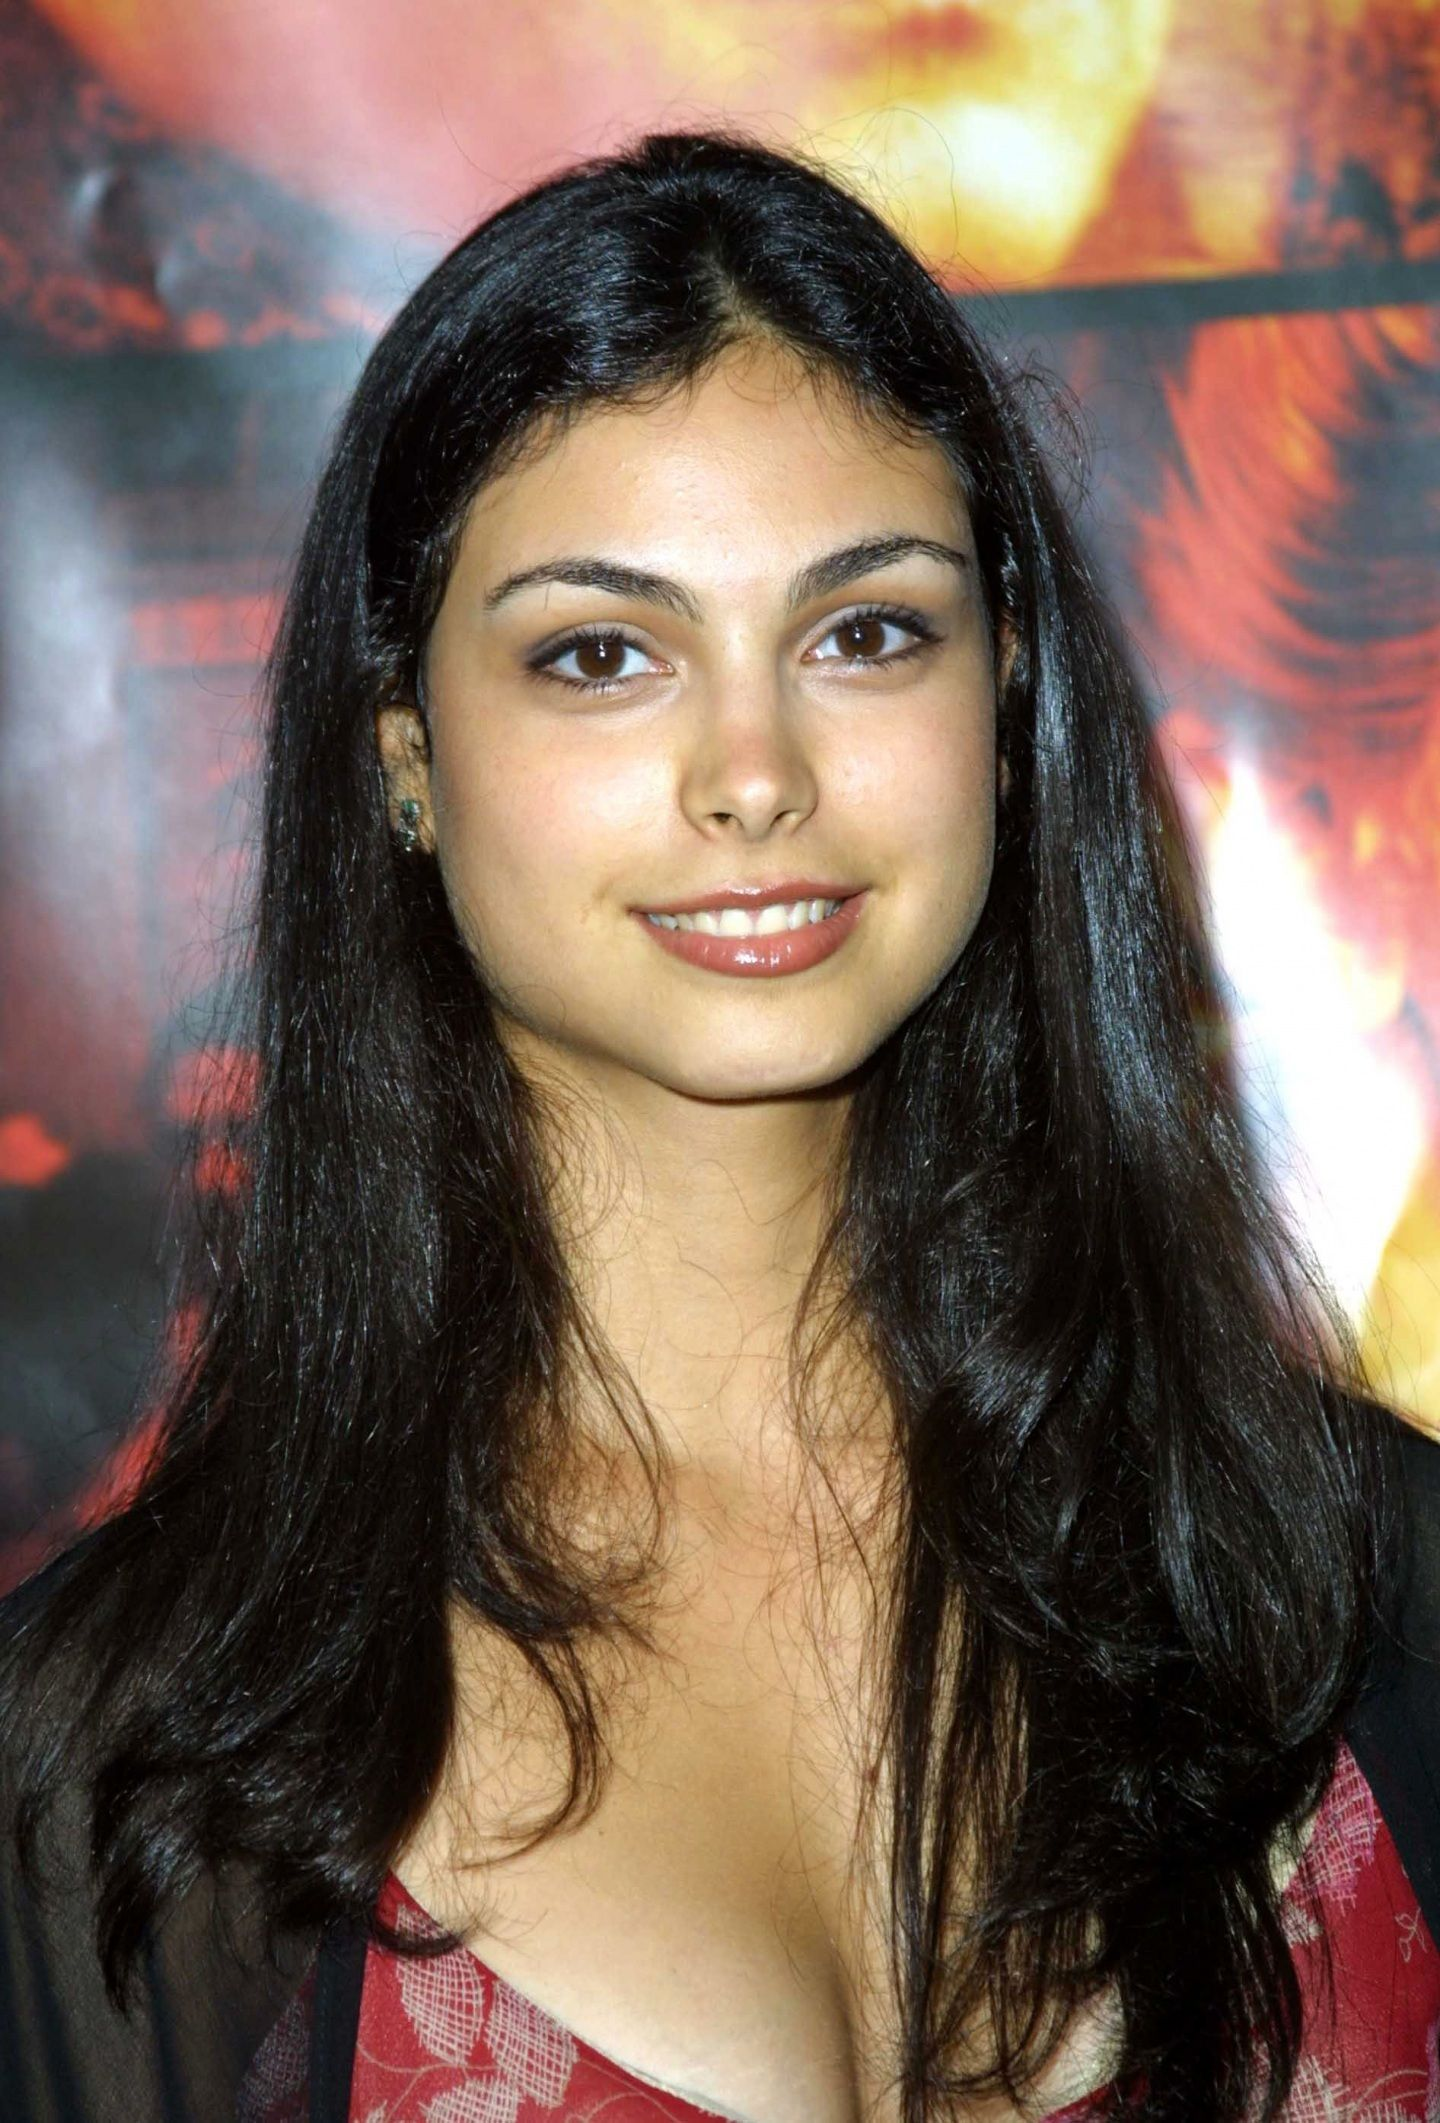 Young Morena Baccarin nude photos 2019